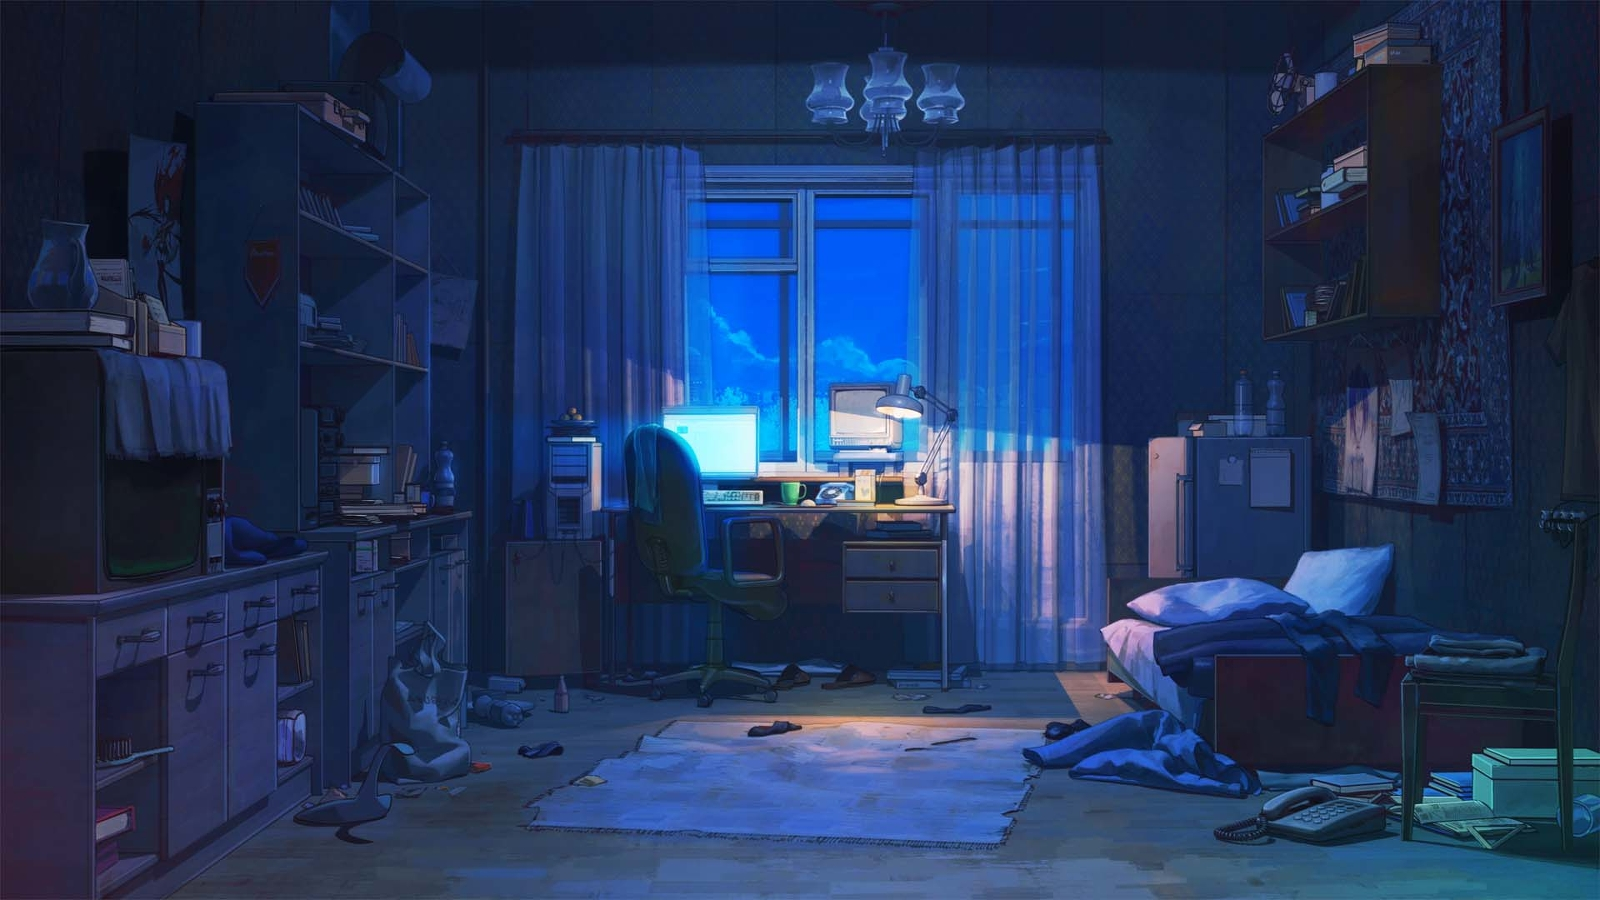 Hisakawa koukou the anime high school for Scenery wallpaper for bedroom